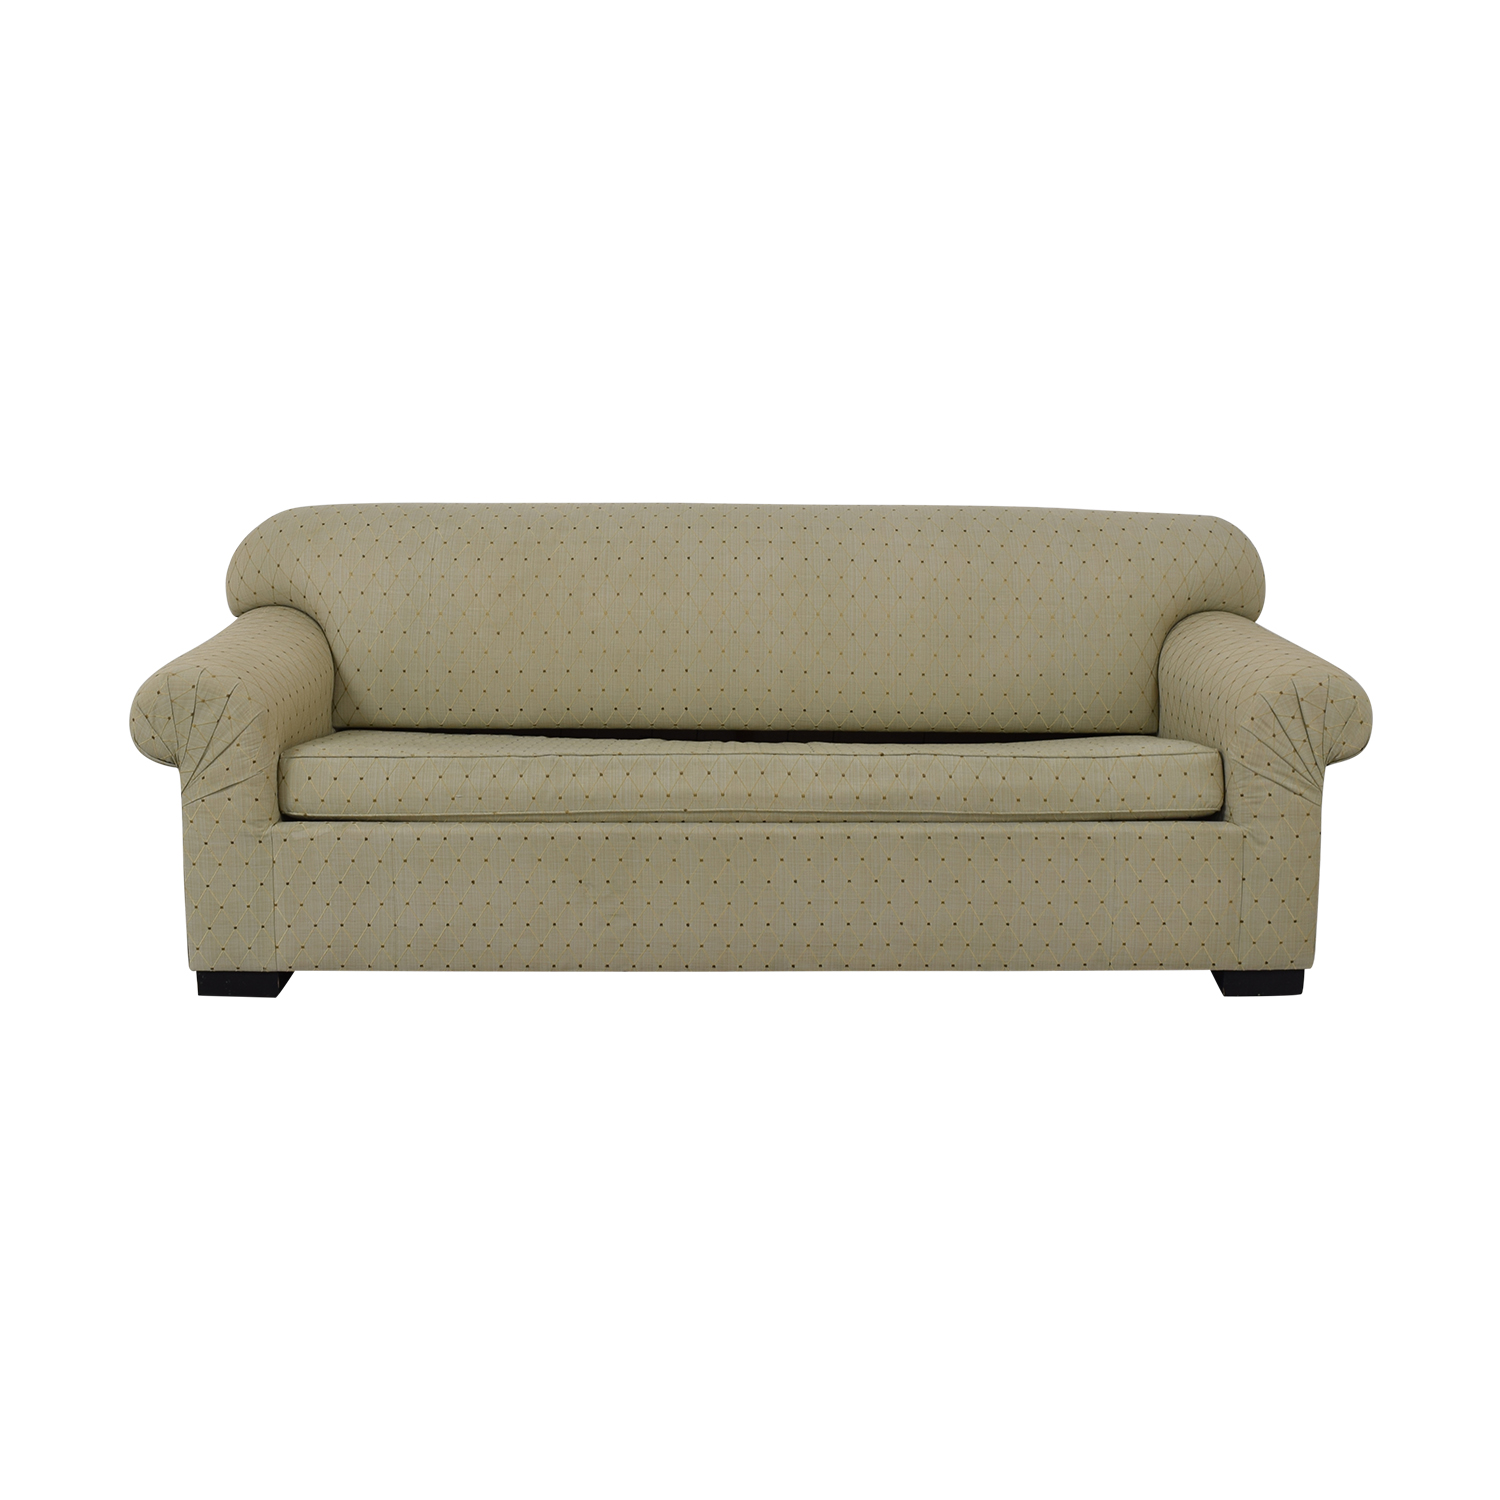 Carlyle Queen Pull Out Sofa Bed / Sofa Beds